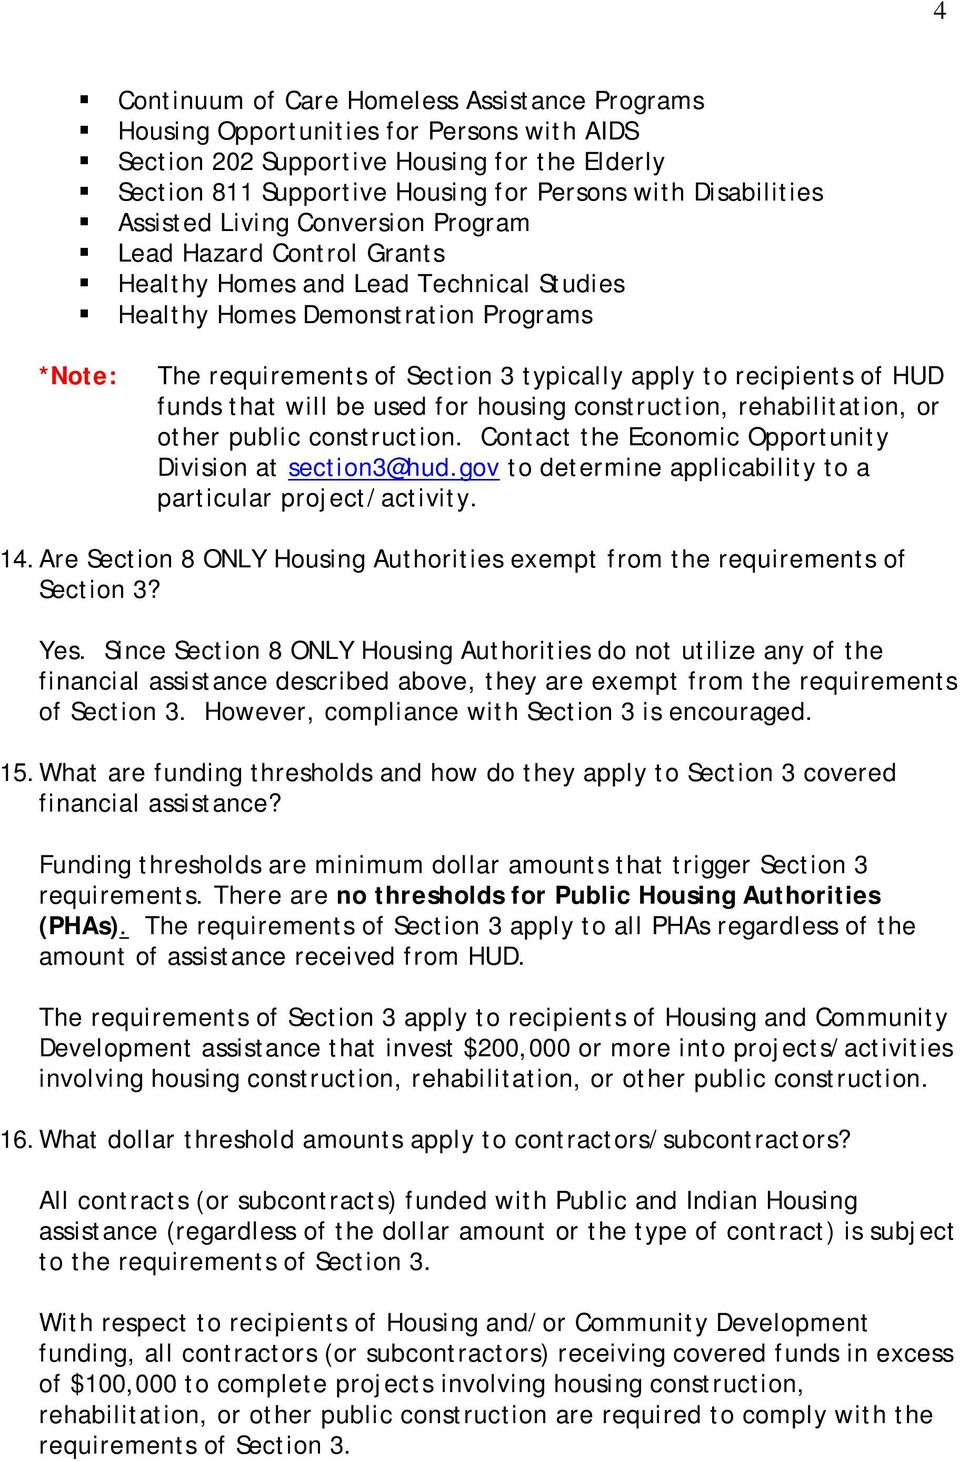 apply to recipients of HUD funds that will be used for housing construction, rehabilitation, or other public construction. Contact the Economic Opportunity Division at section3@hud.